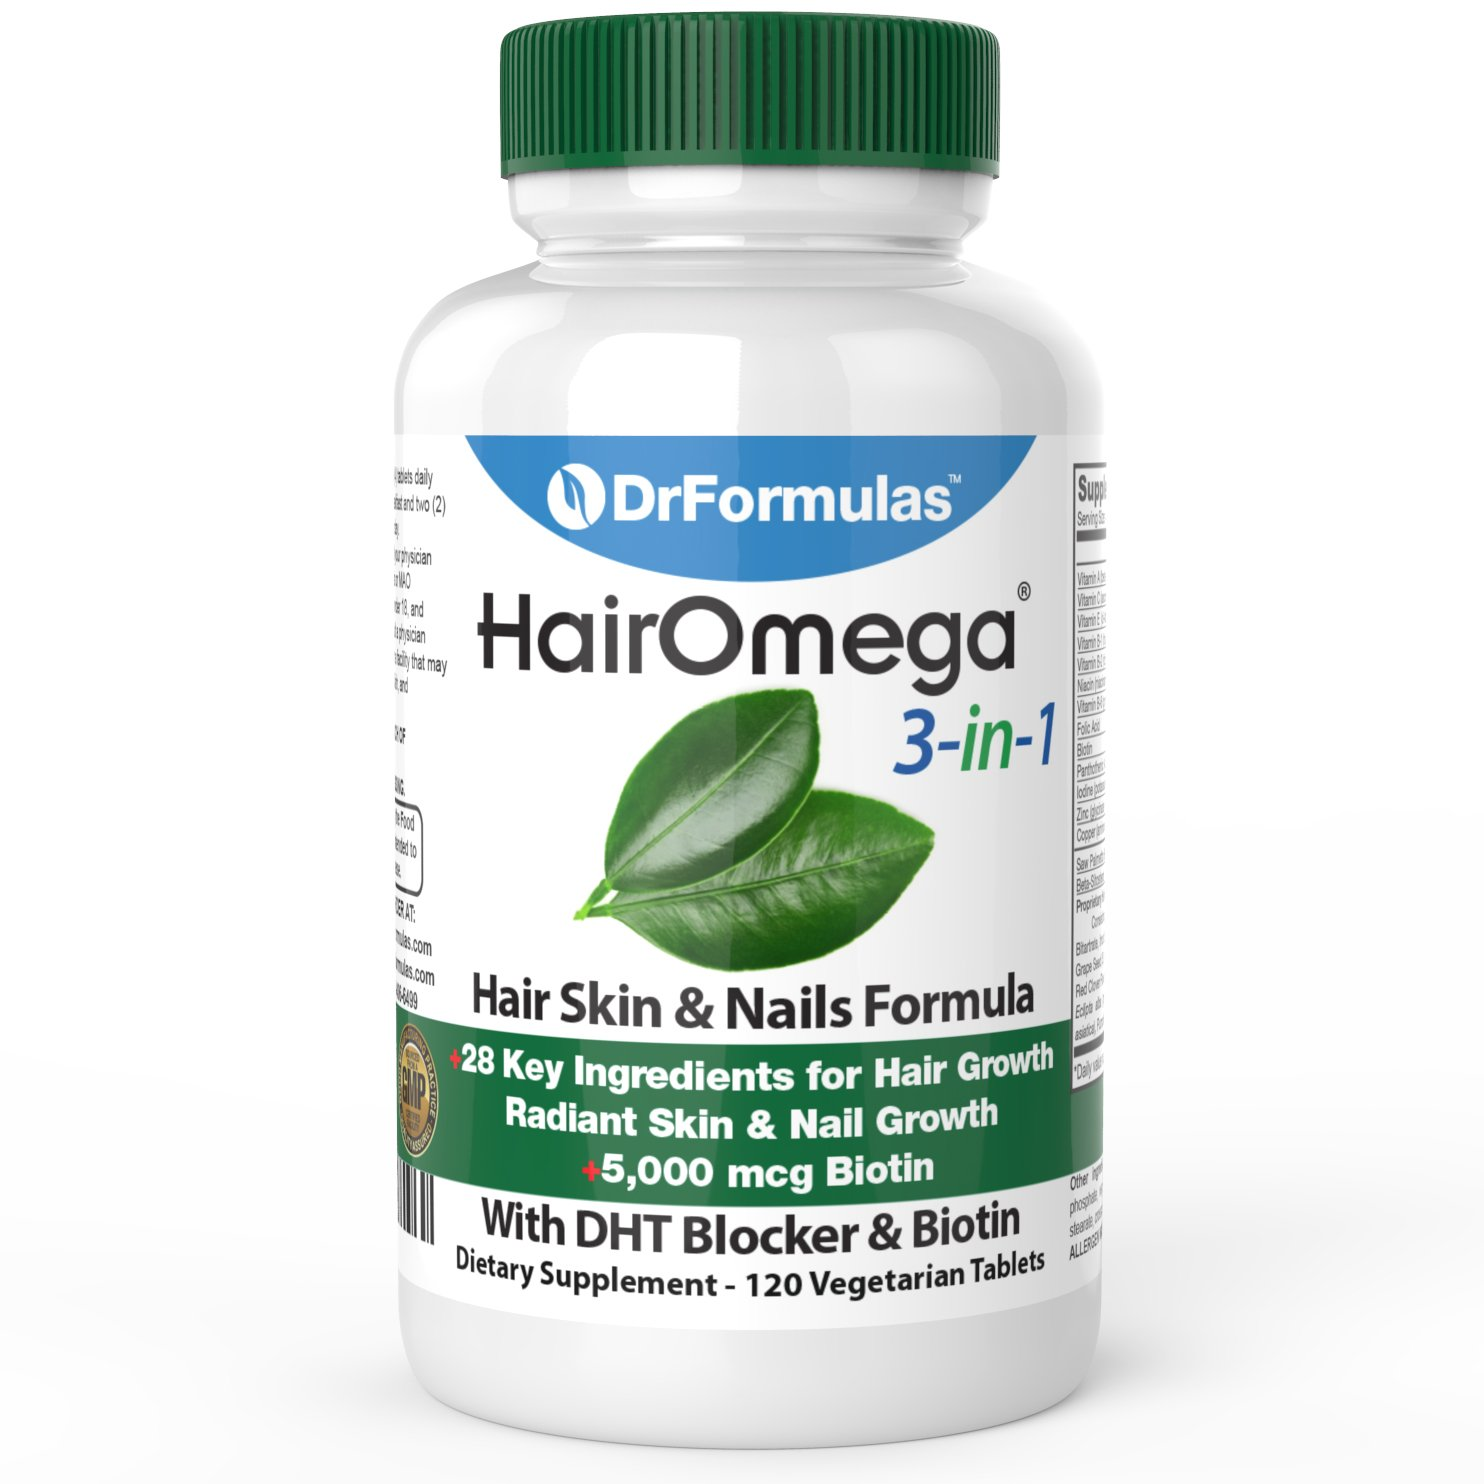 DrFormulas HairOmega Vitamins Blocker Supplement